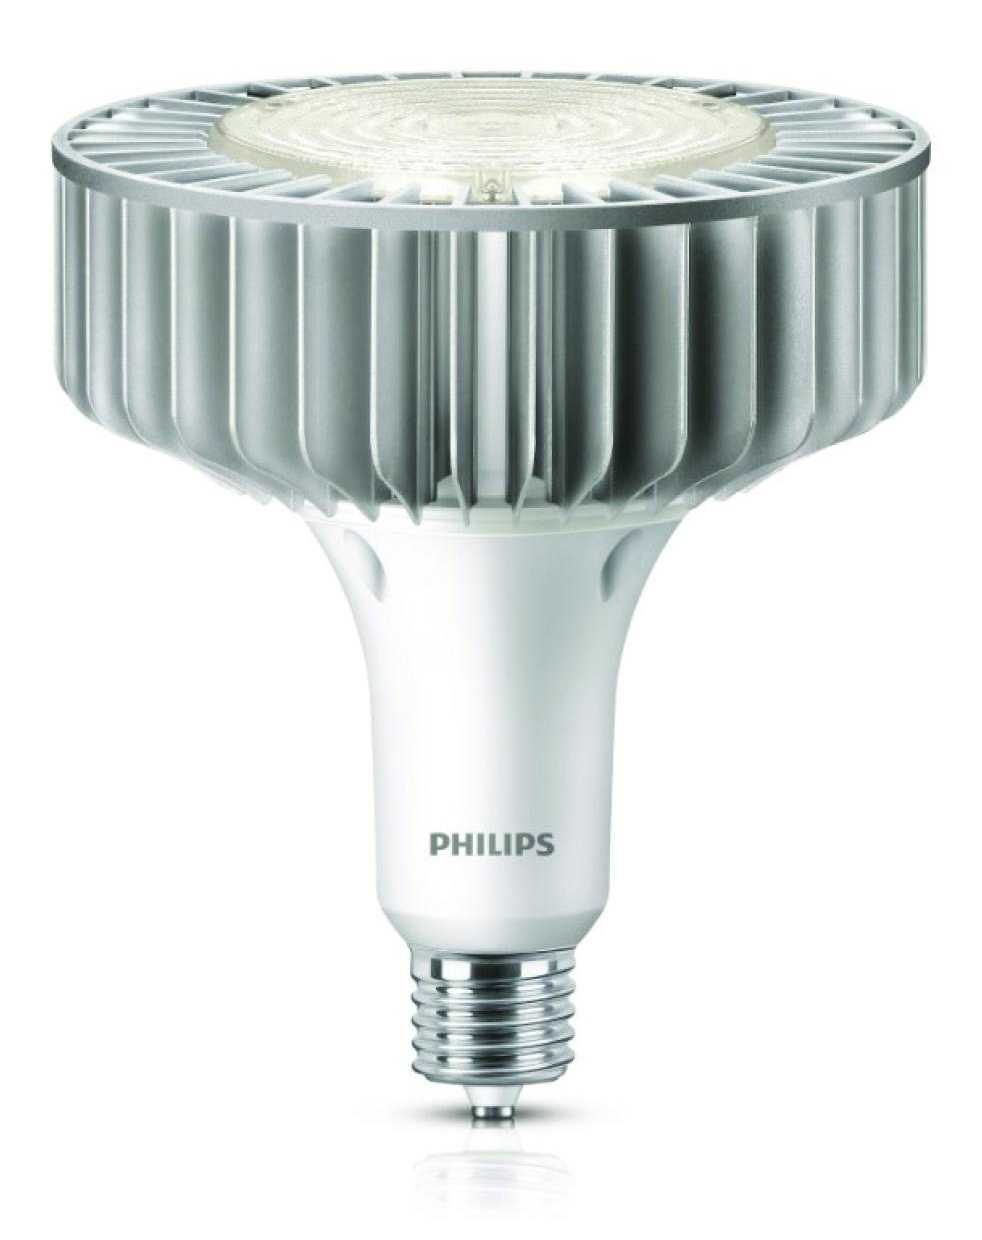 Philips Led Trueforce High Lumen Bay Lamp